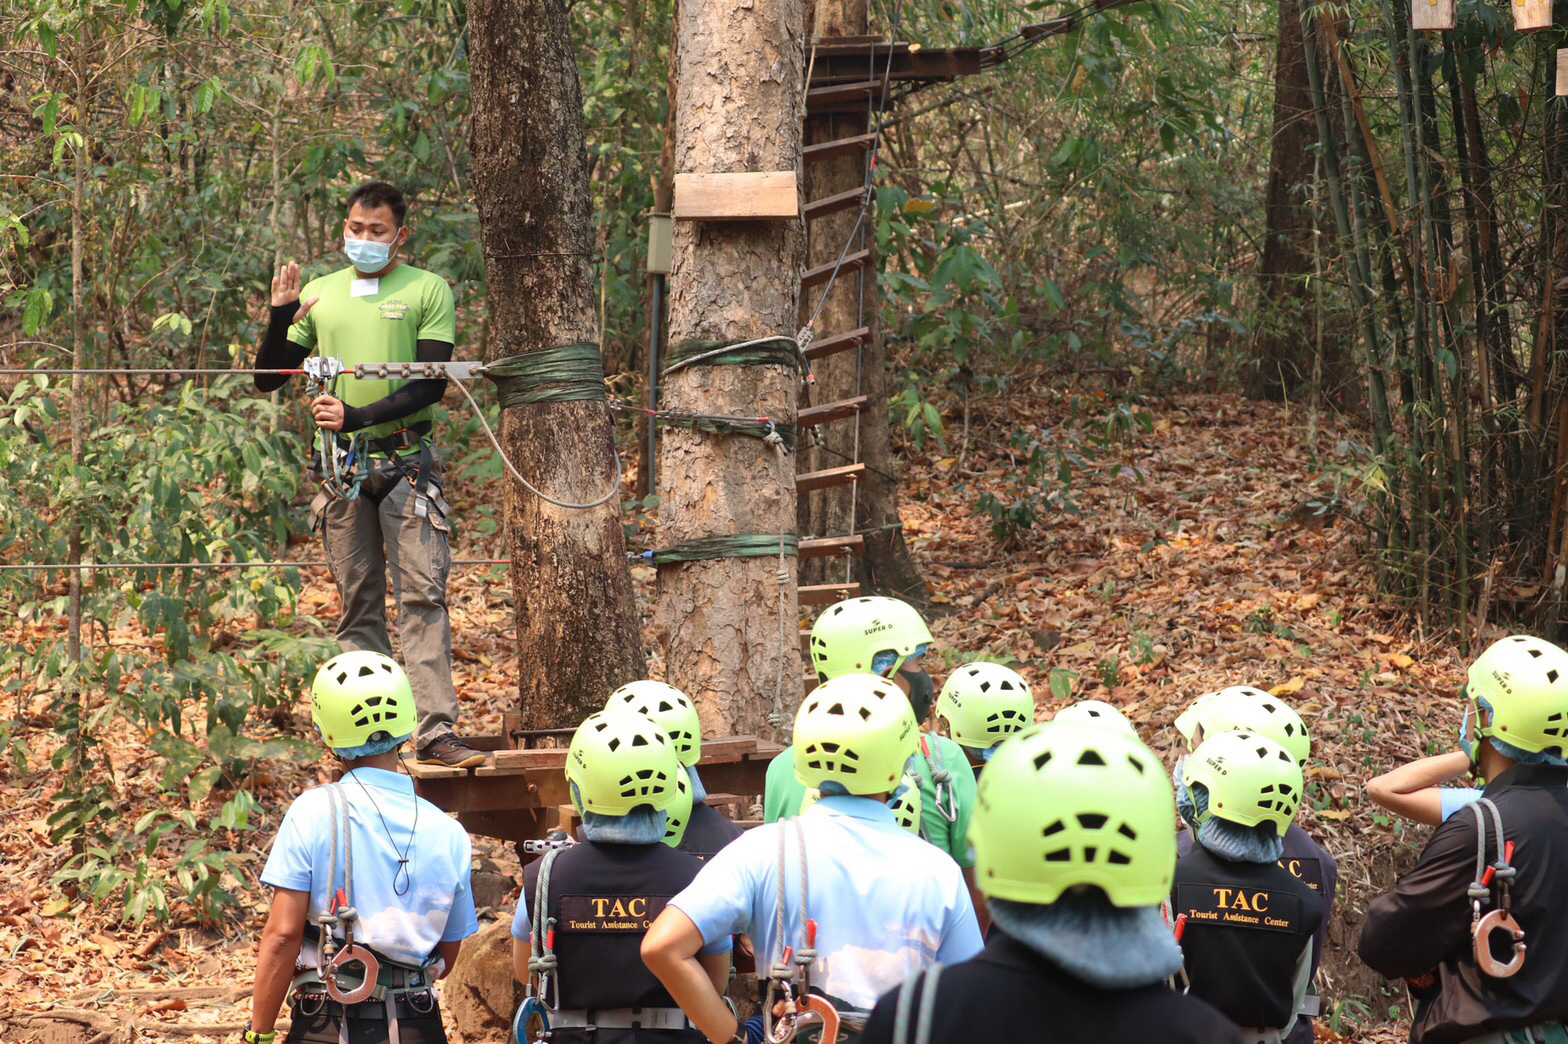 Safety standards for land tourism, adventure sport and ziplining activities are needed. (Kasetsart University photo)